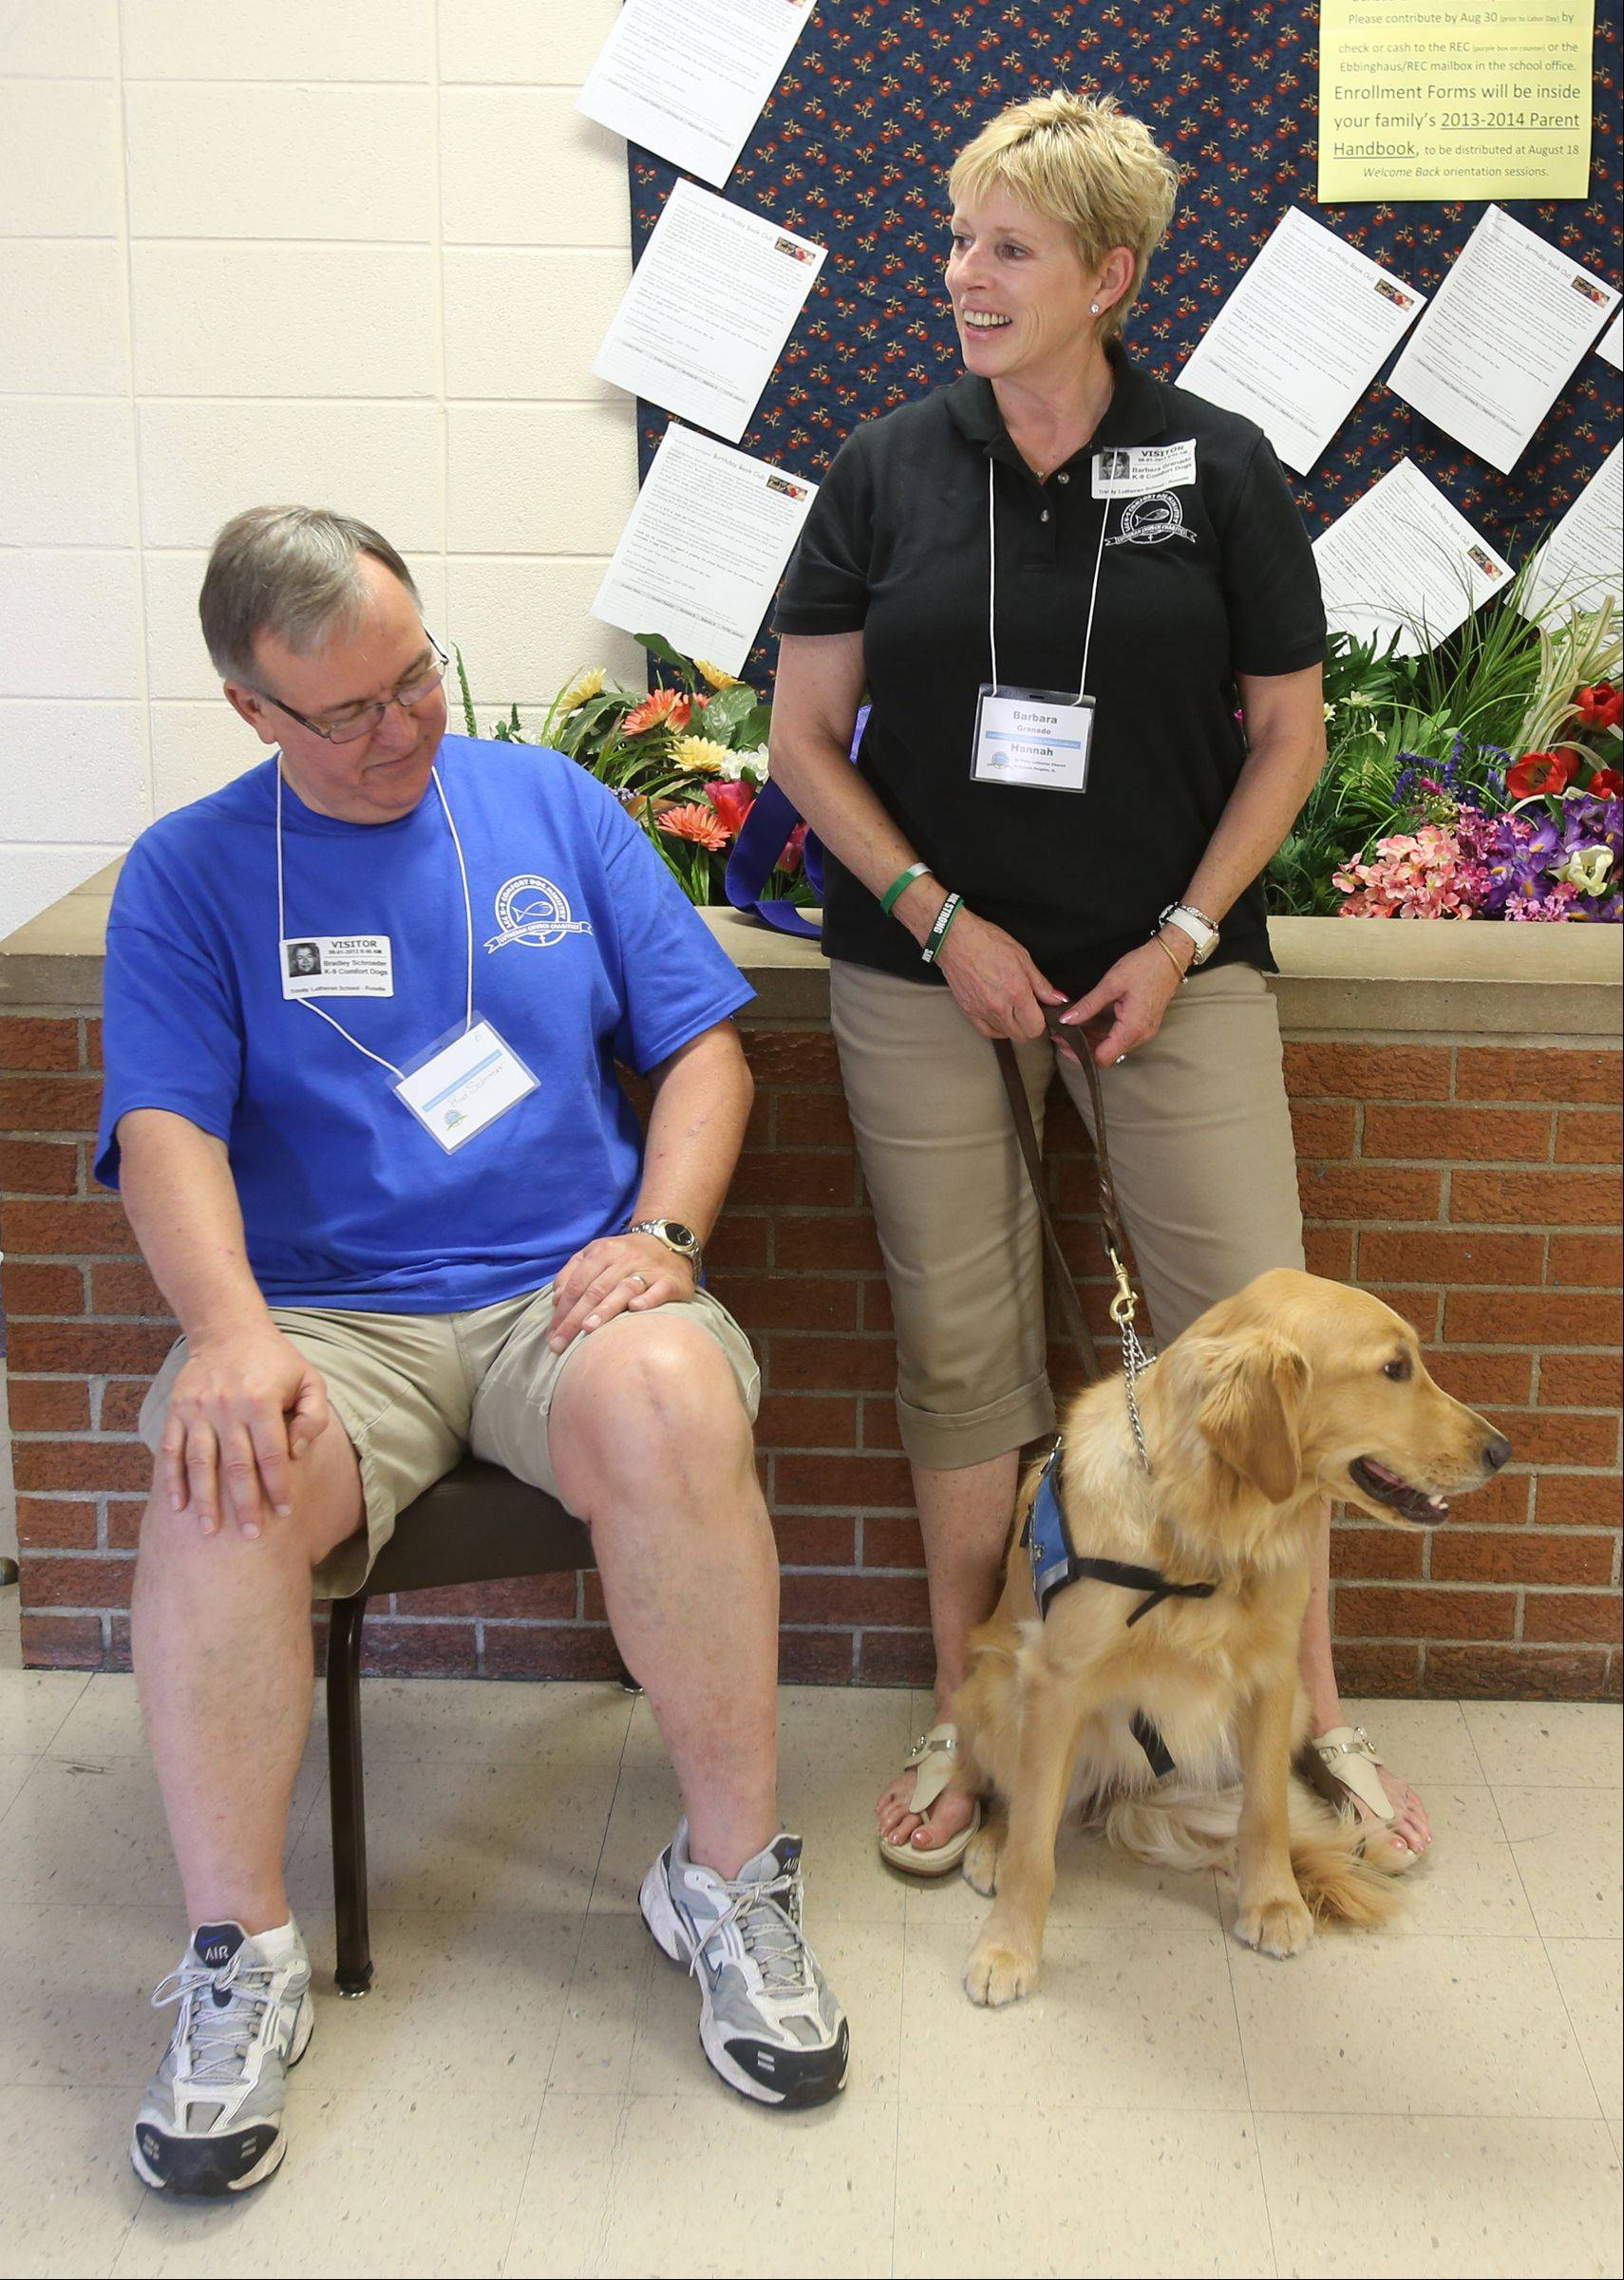 Bradley Schroeder and Barbara Granado, of Arlington Heights, along with comfort dog Hannah, relax as other comfort dogs participate in the annual meeting for the K-9 Comfort Dog Ministry held this year at the Trinity Lutheran Church in Roselle.